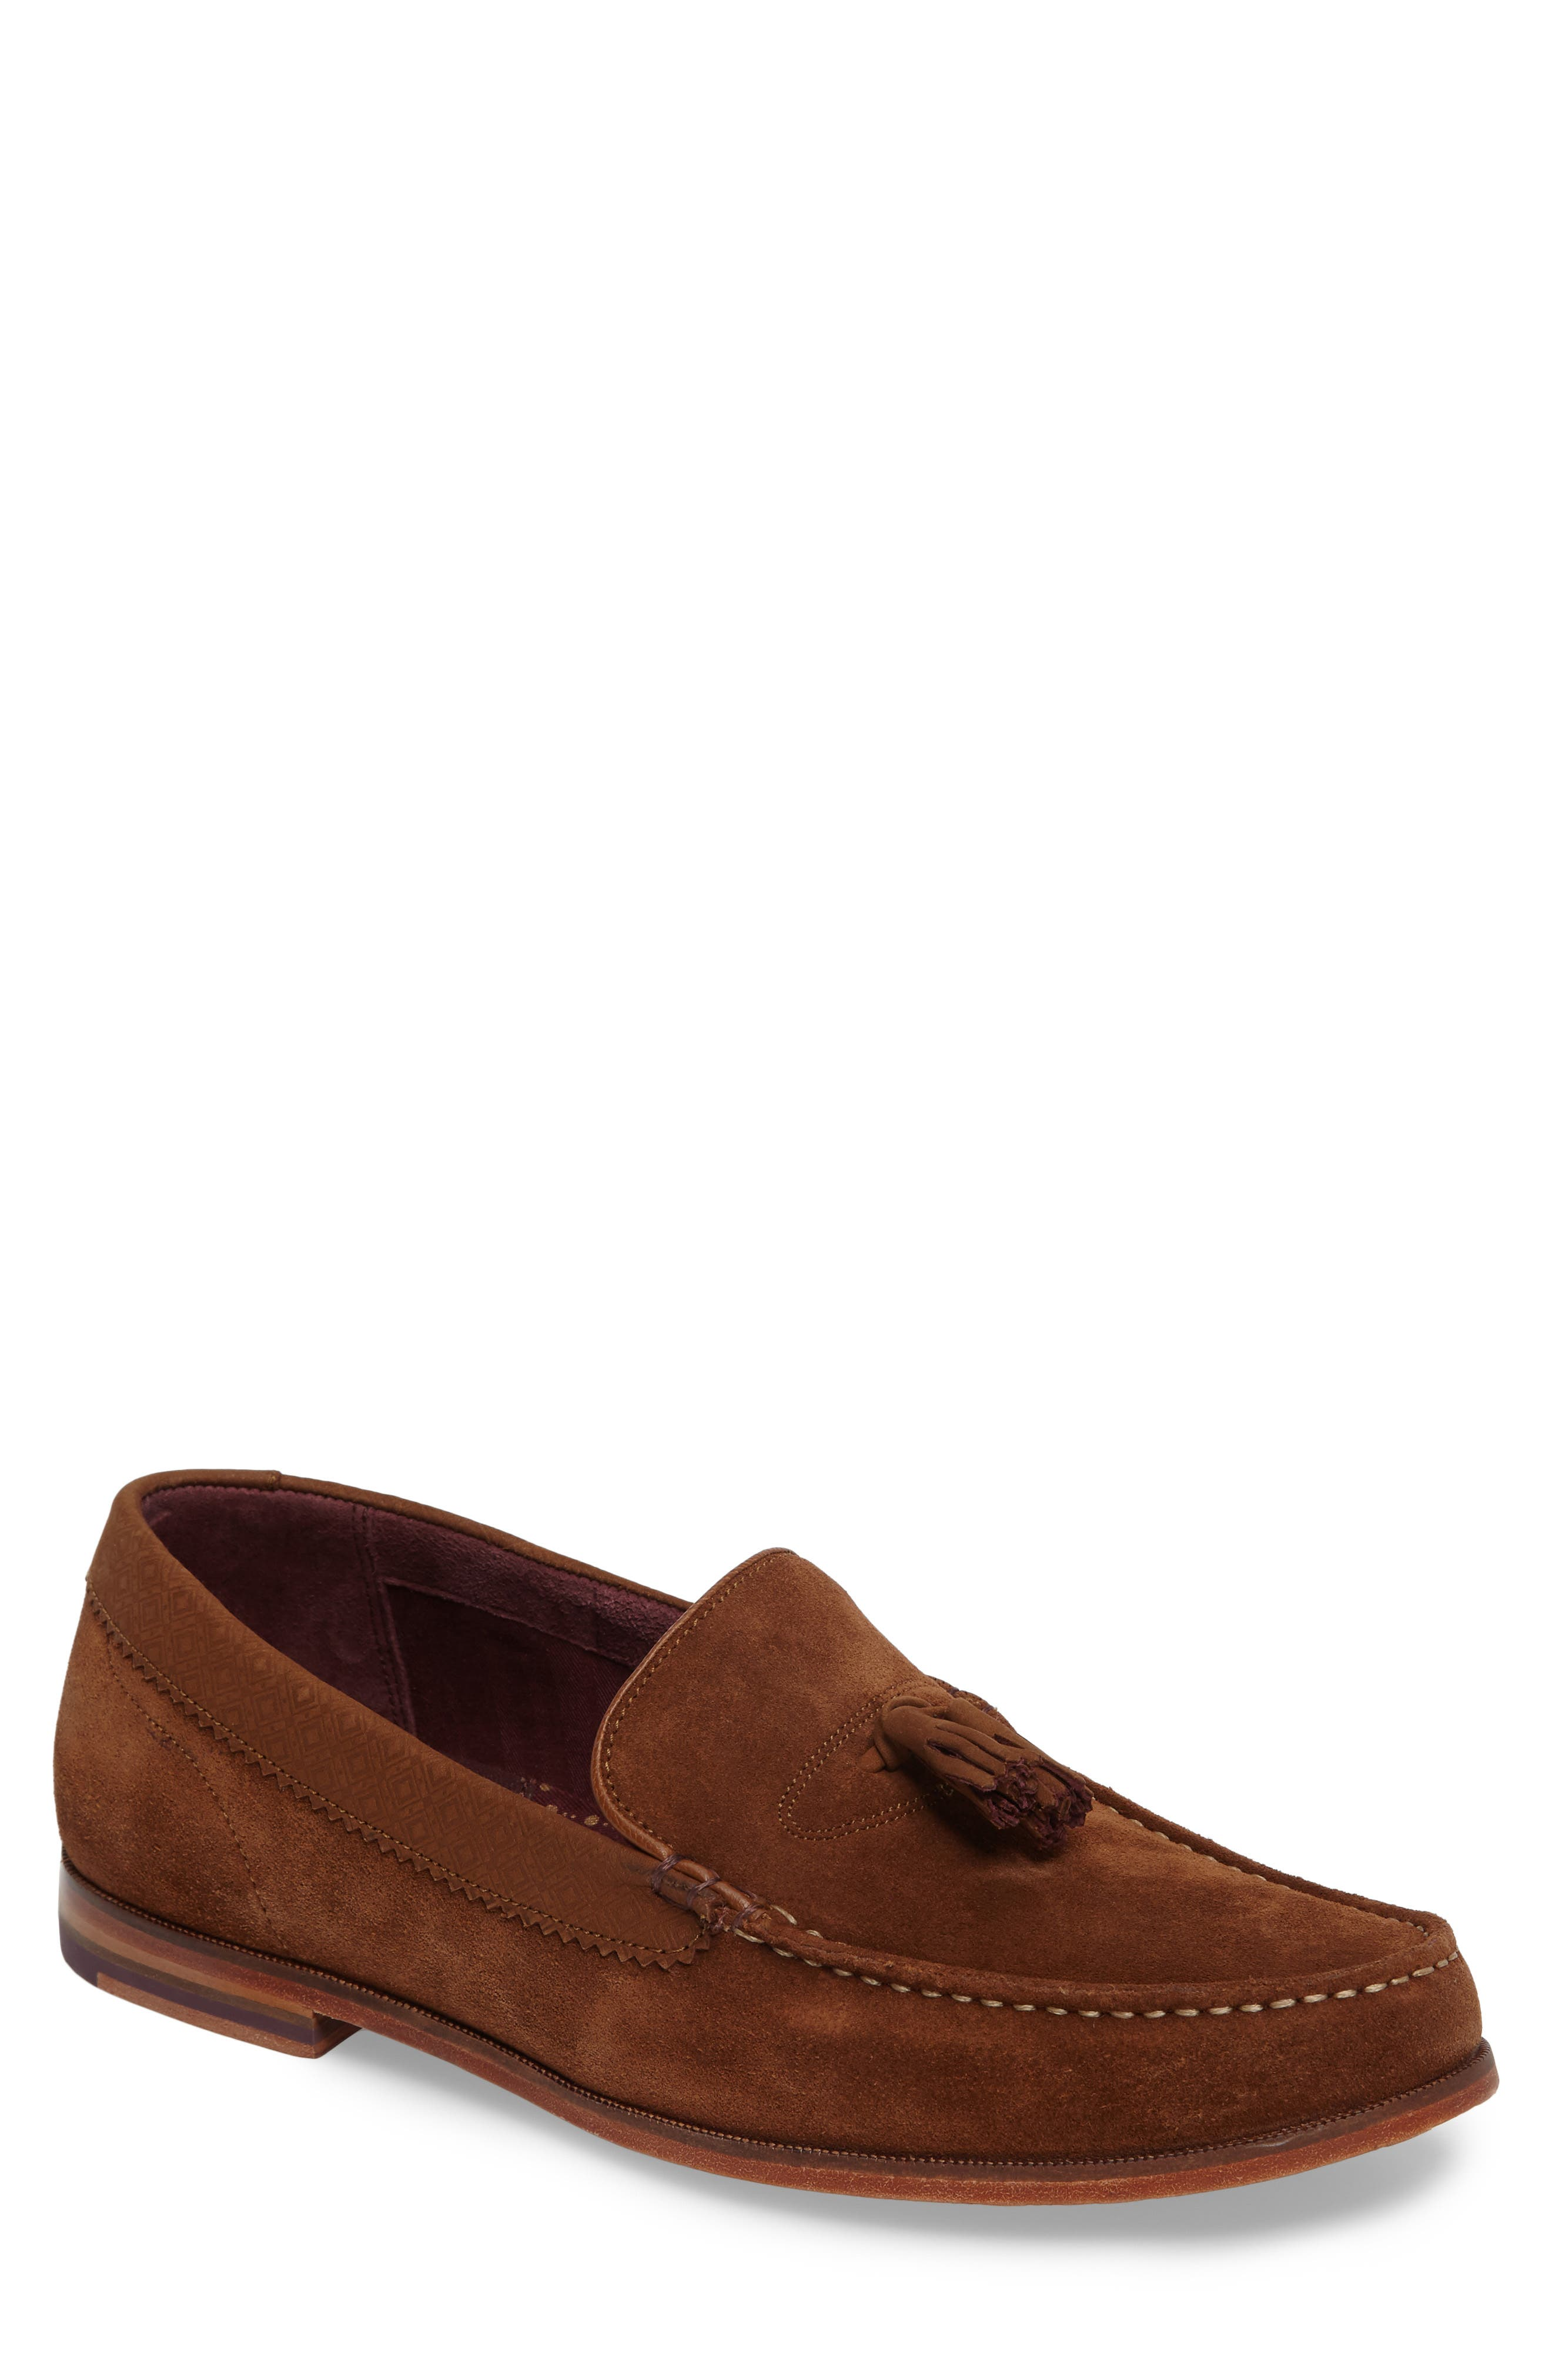 Dougge Tassel Loafer,                             Main thumbnail 2, color,